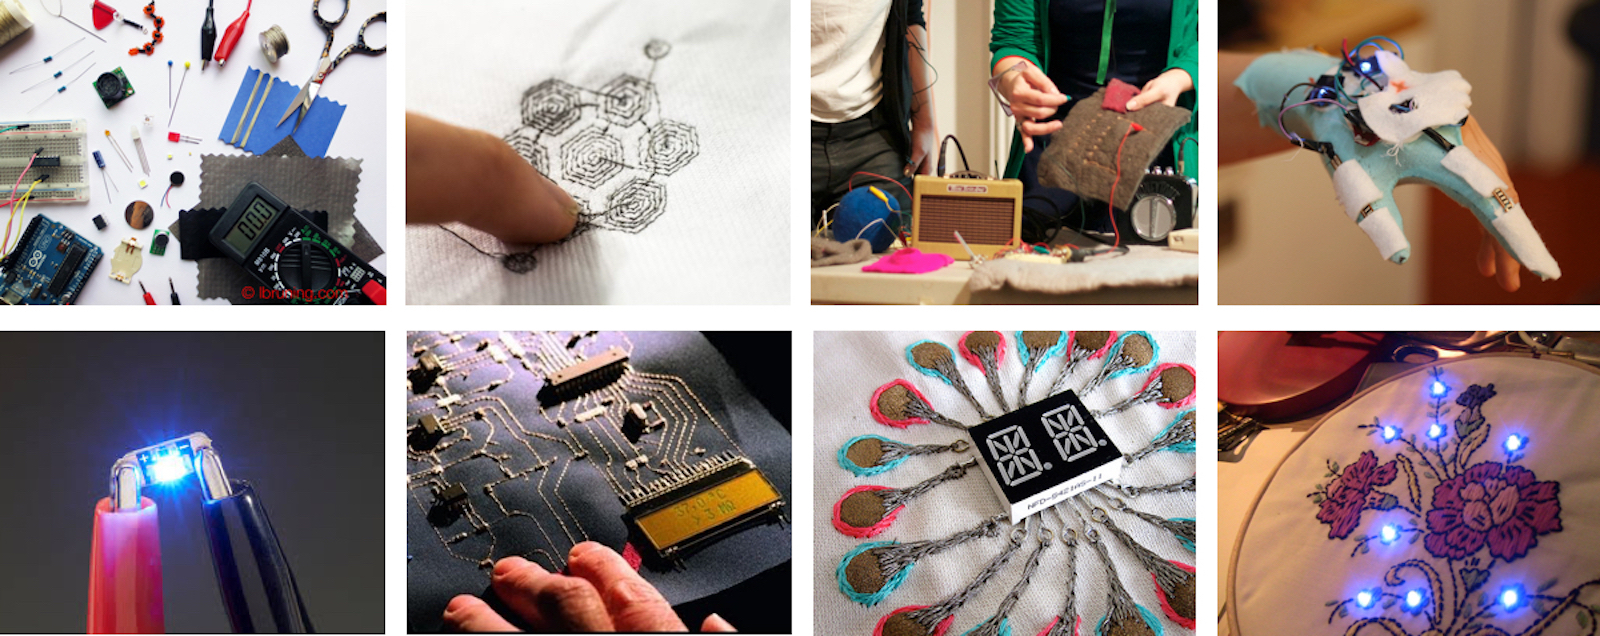 "The sources of these images is Google, with the search word ""making etextiles"". The work of Kobakant, Lara Grant, Lynne Bruning and others is depicted in these pictures."